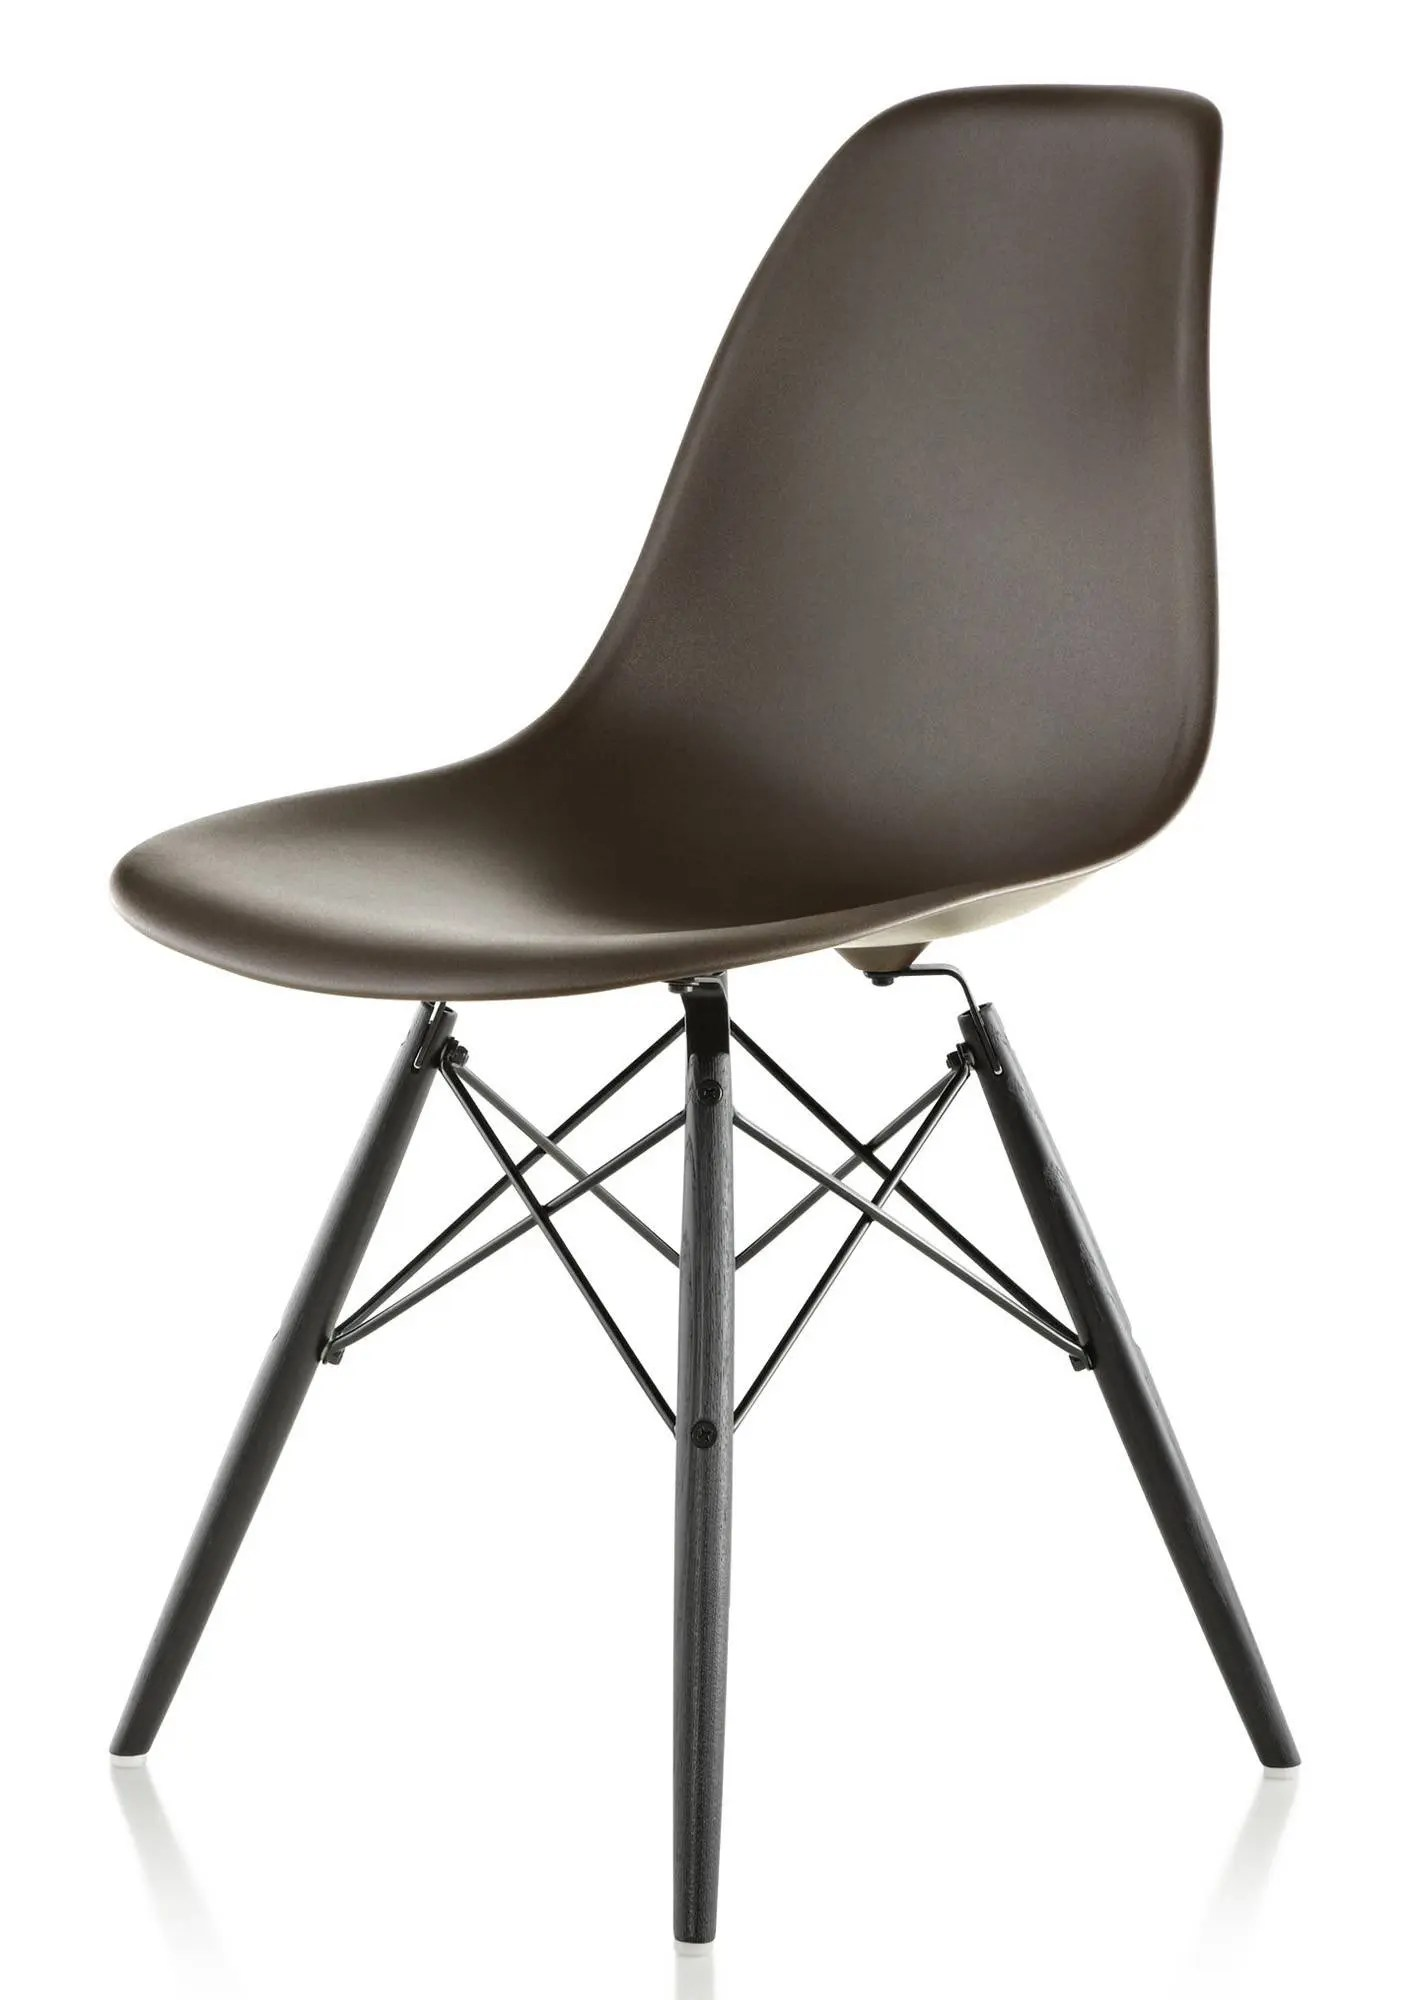 Herman Miller Eames Chairs Herman Miller Eames Molded Plastic Side Chair Gr Shop